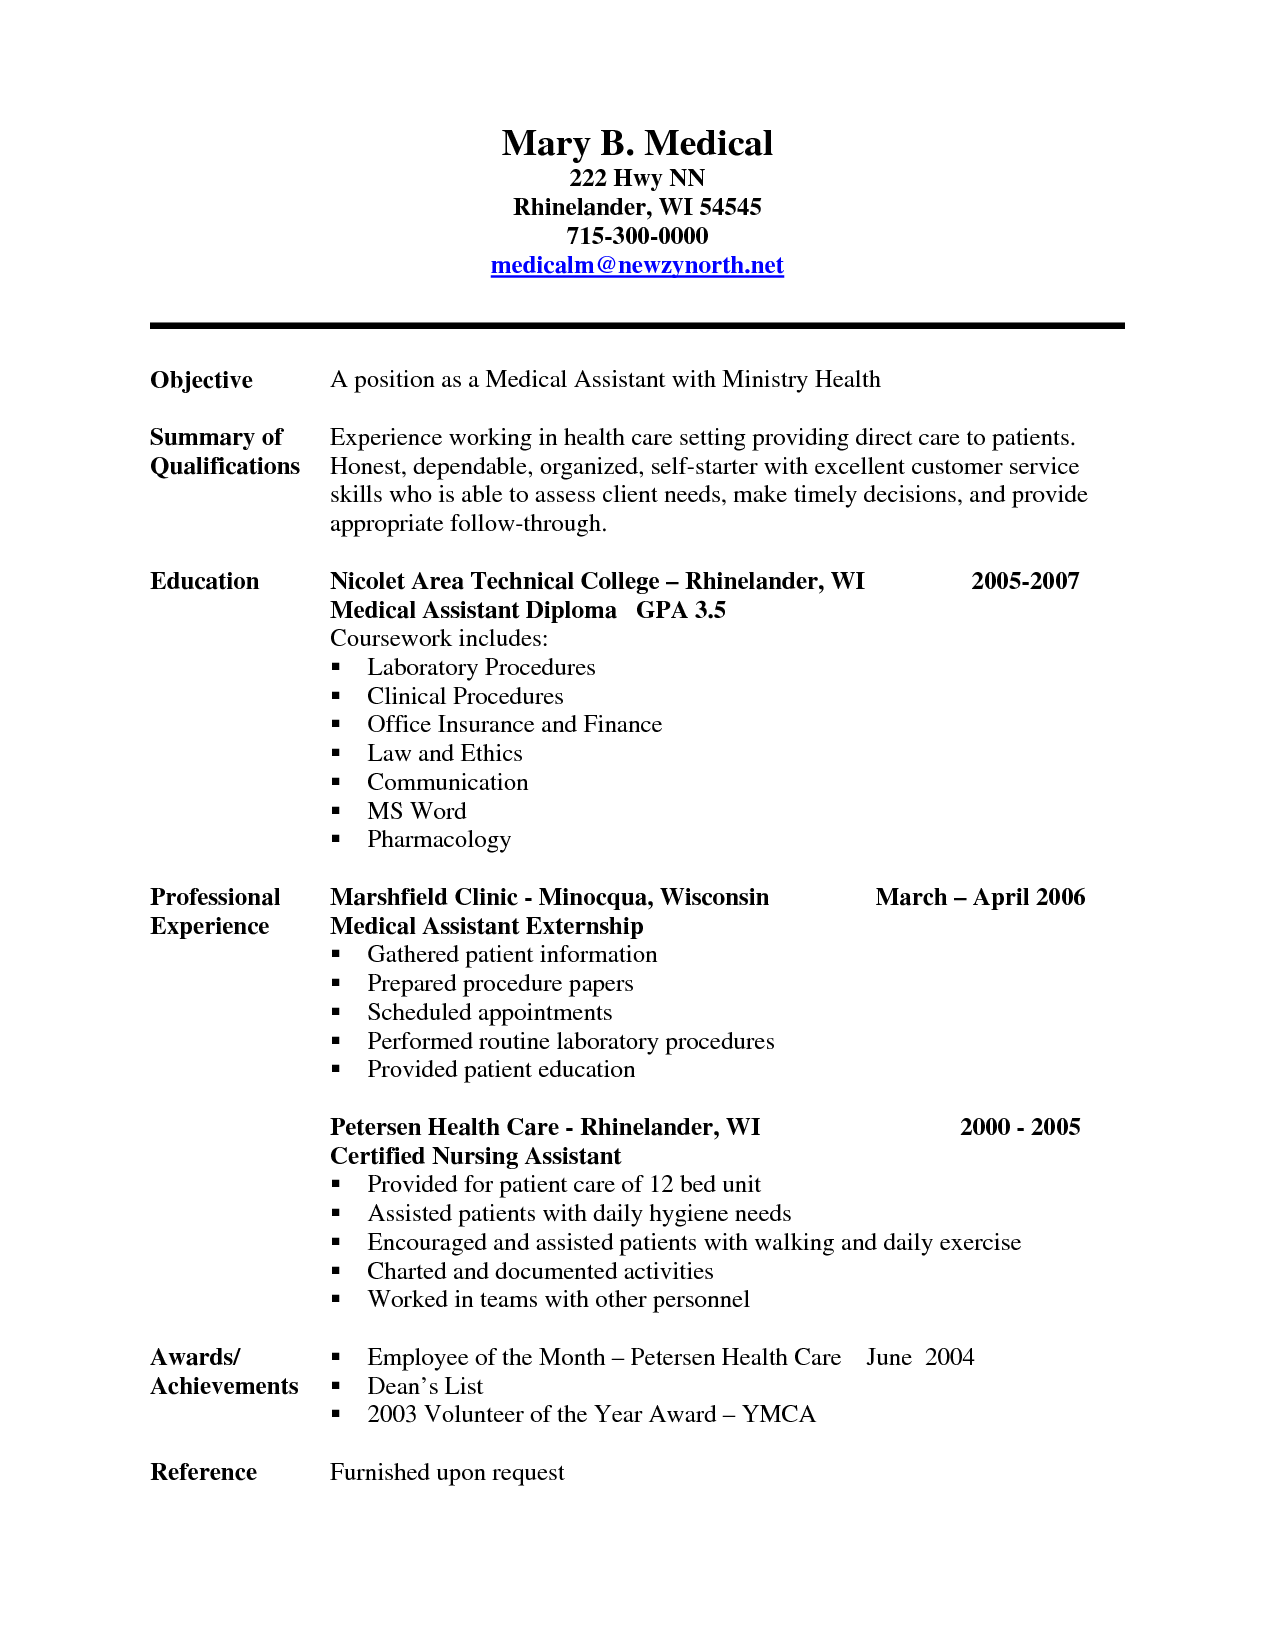 experienced medical assistant resume sample cakepins com